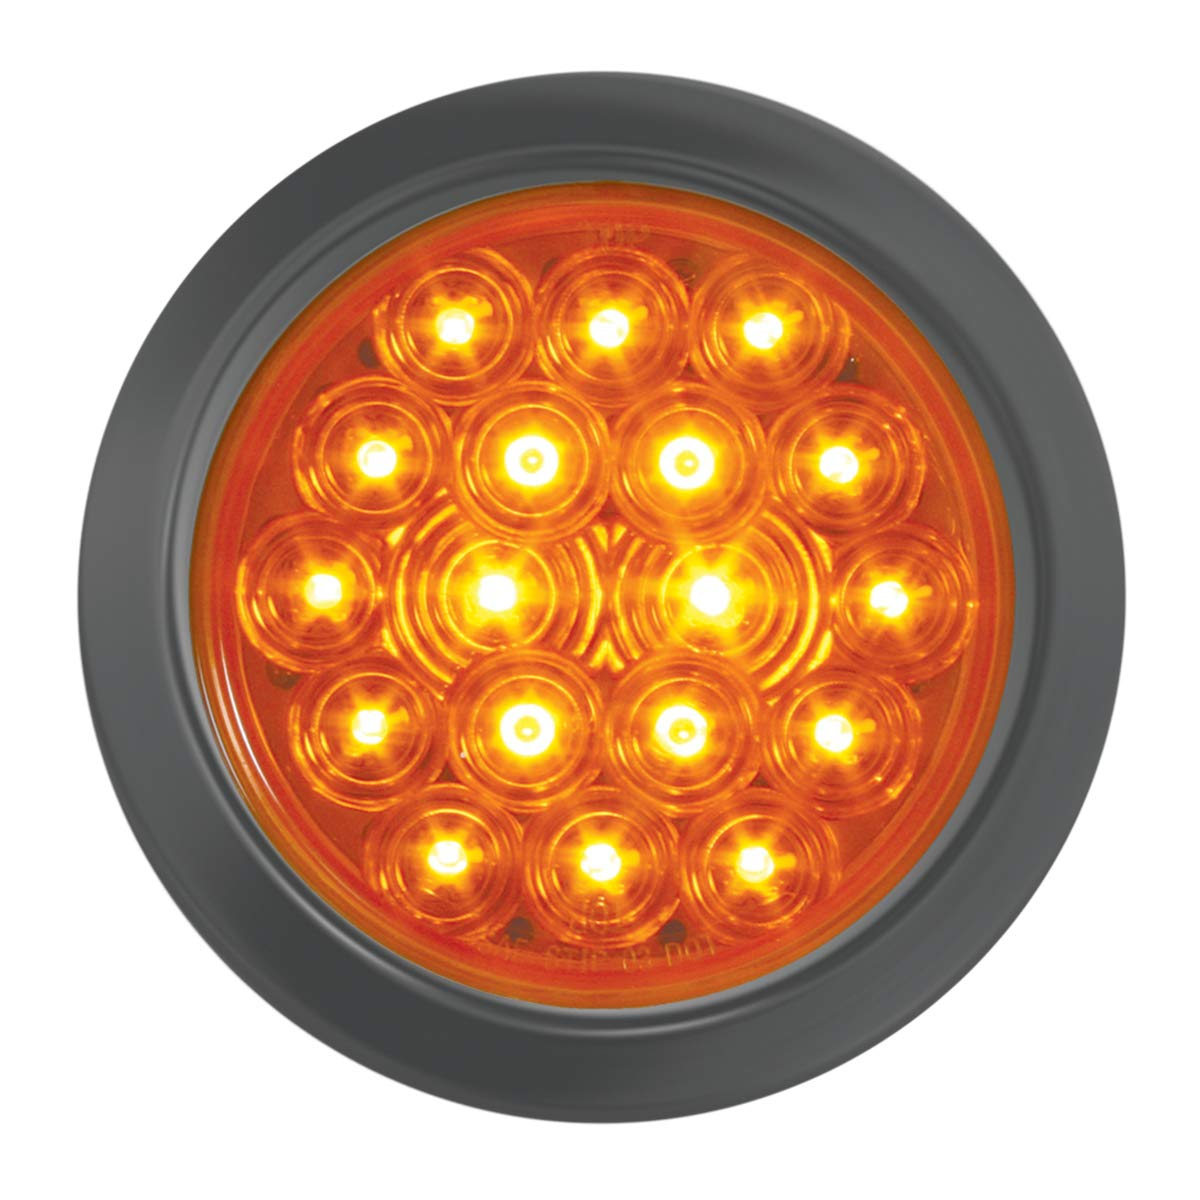 4 Fleet Amber 18 with Grommet and Pigtail GG Grand General 76455 LED Light